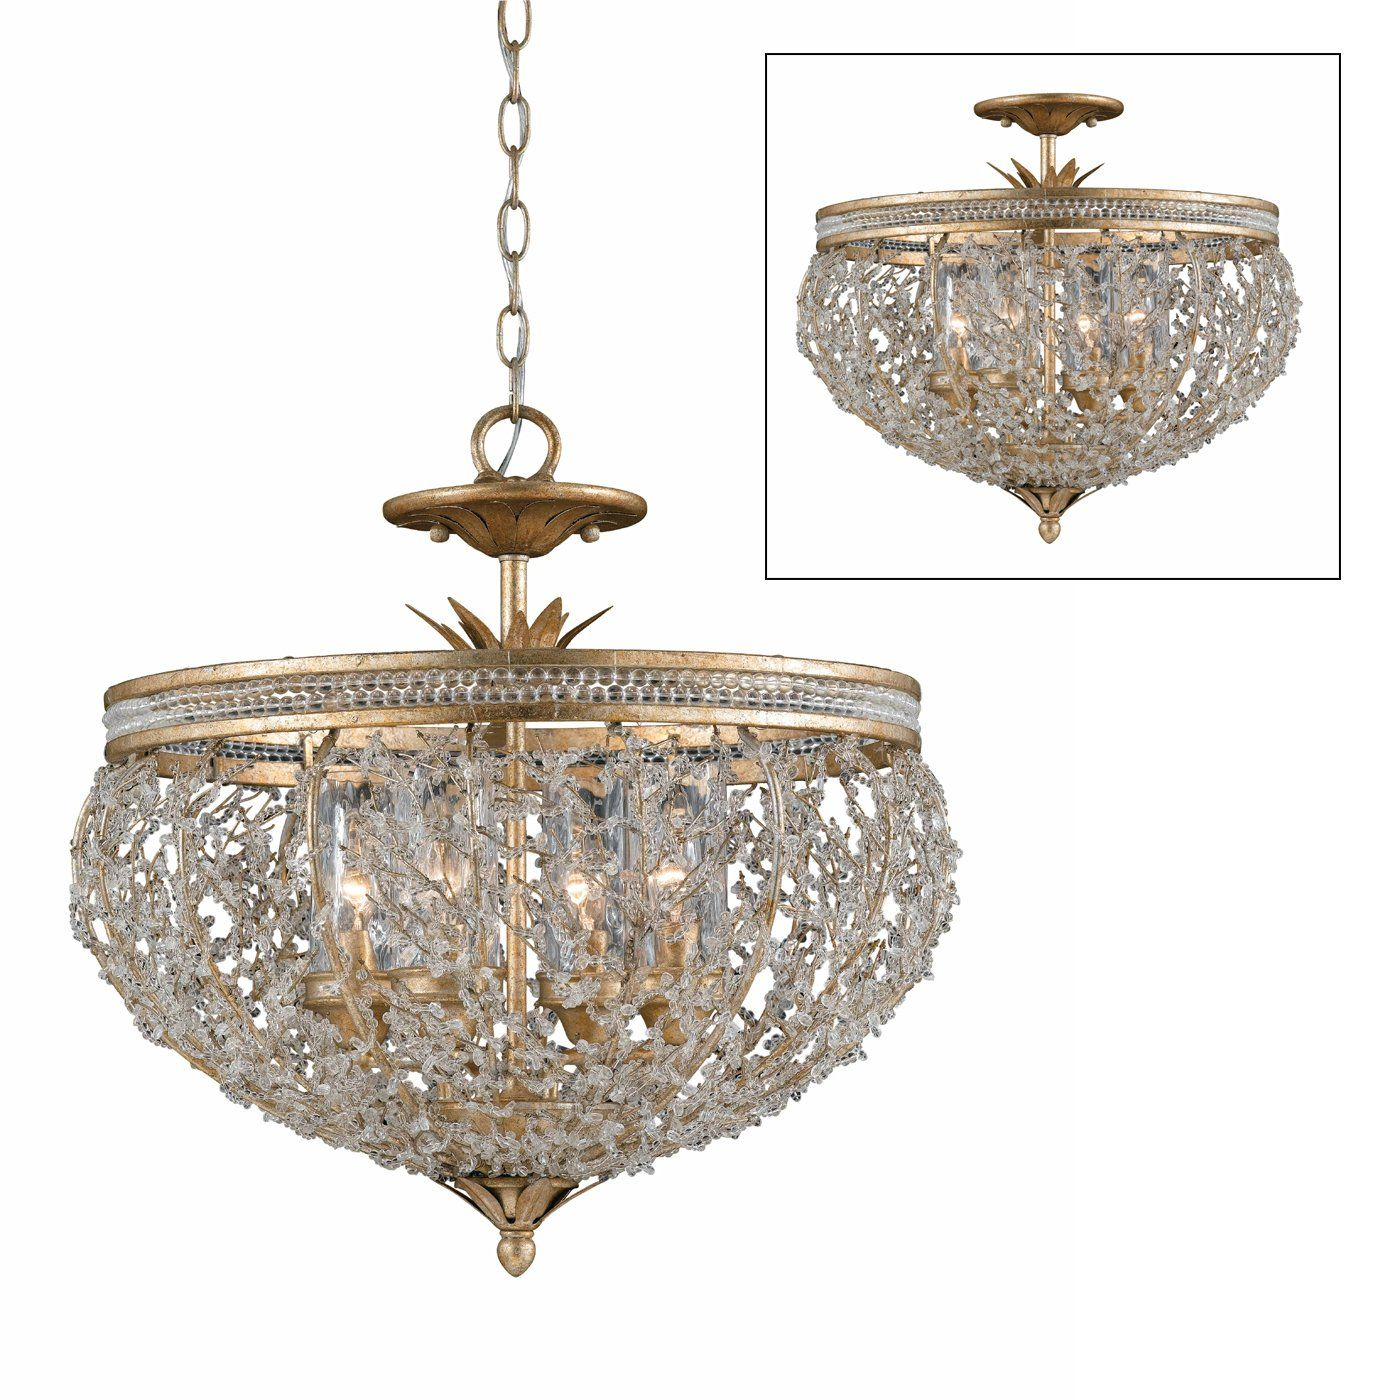 Triarch 29231 22 4 Light Garland Convertible Large Pendant Gold